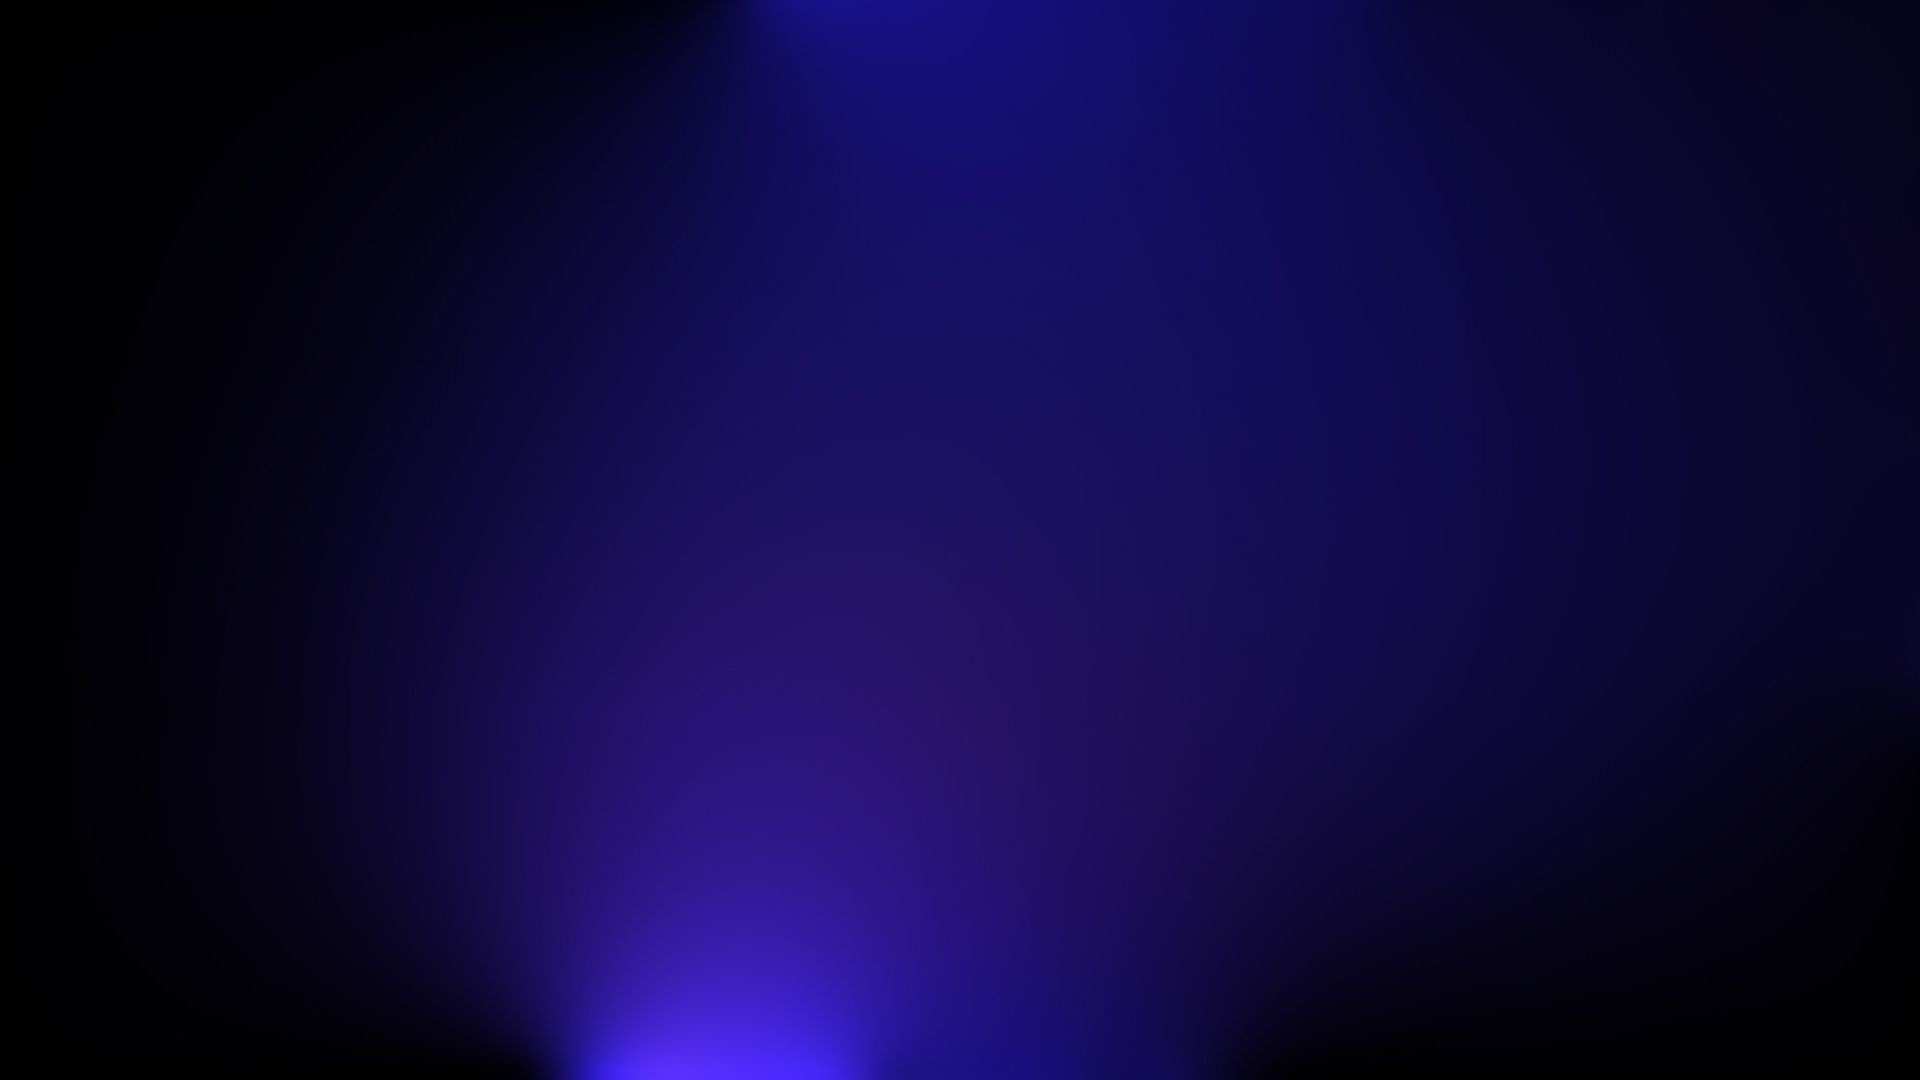 Dark Blue Background Images Wallpapertag: Dark Blue Background Wallpaper ·① WallpaperTag